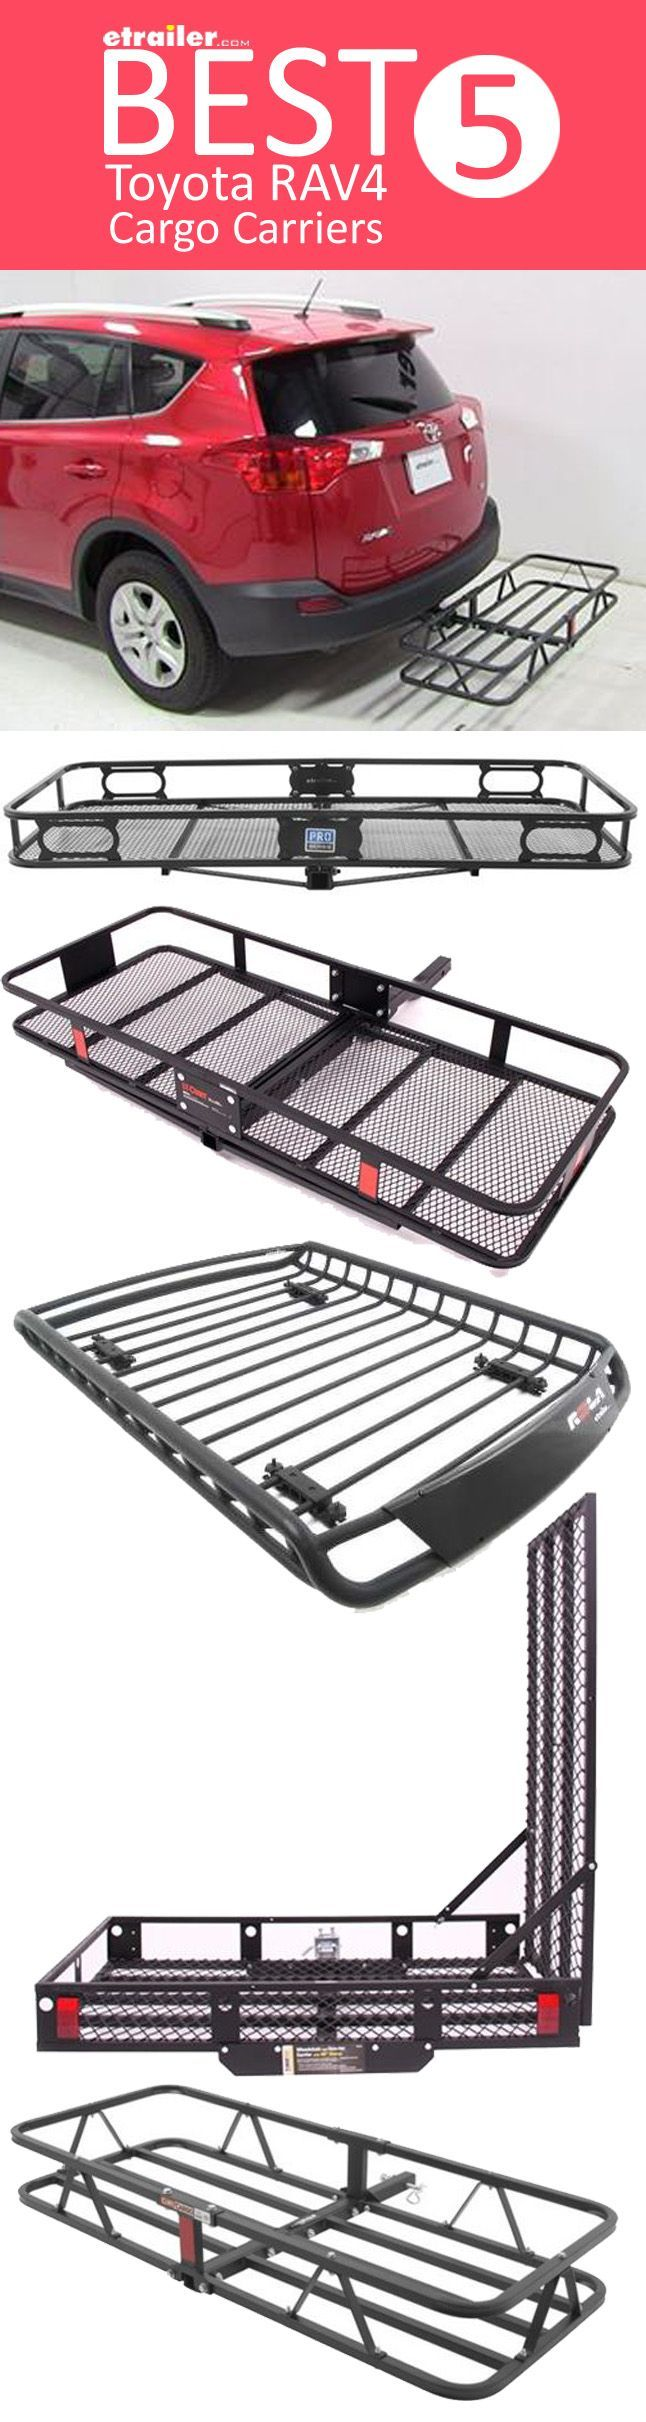 Here are the BEST Cargo Carriers for your Toyota RAV4. Find the right roof mounted cargo basket or hitch mounted cargo carrier so you can carry all of your gear on trips and outdoor adventures!